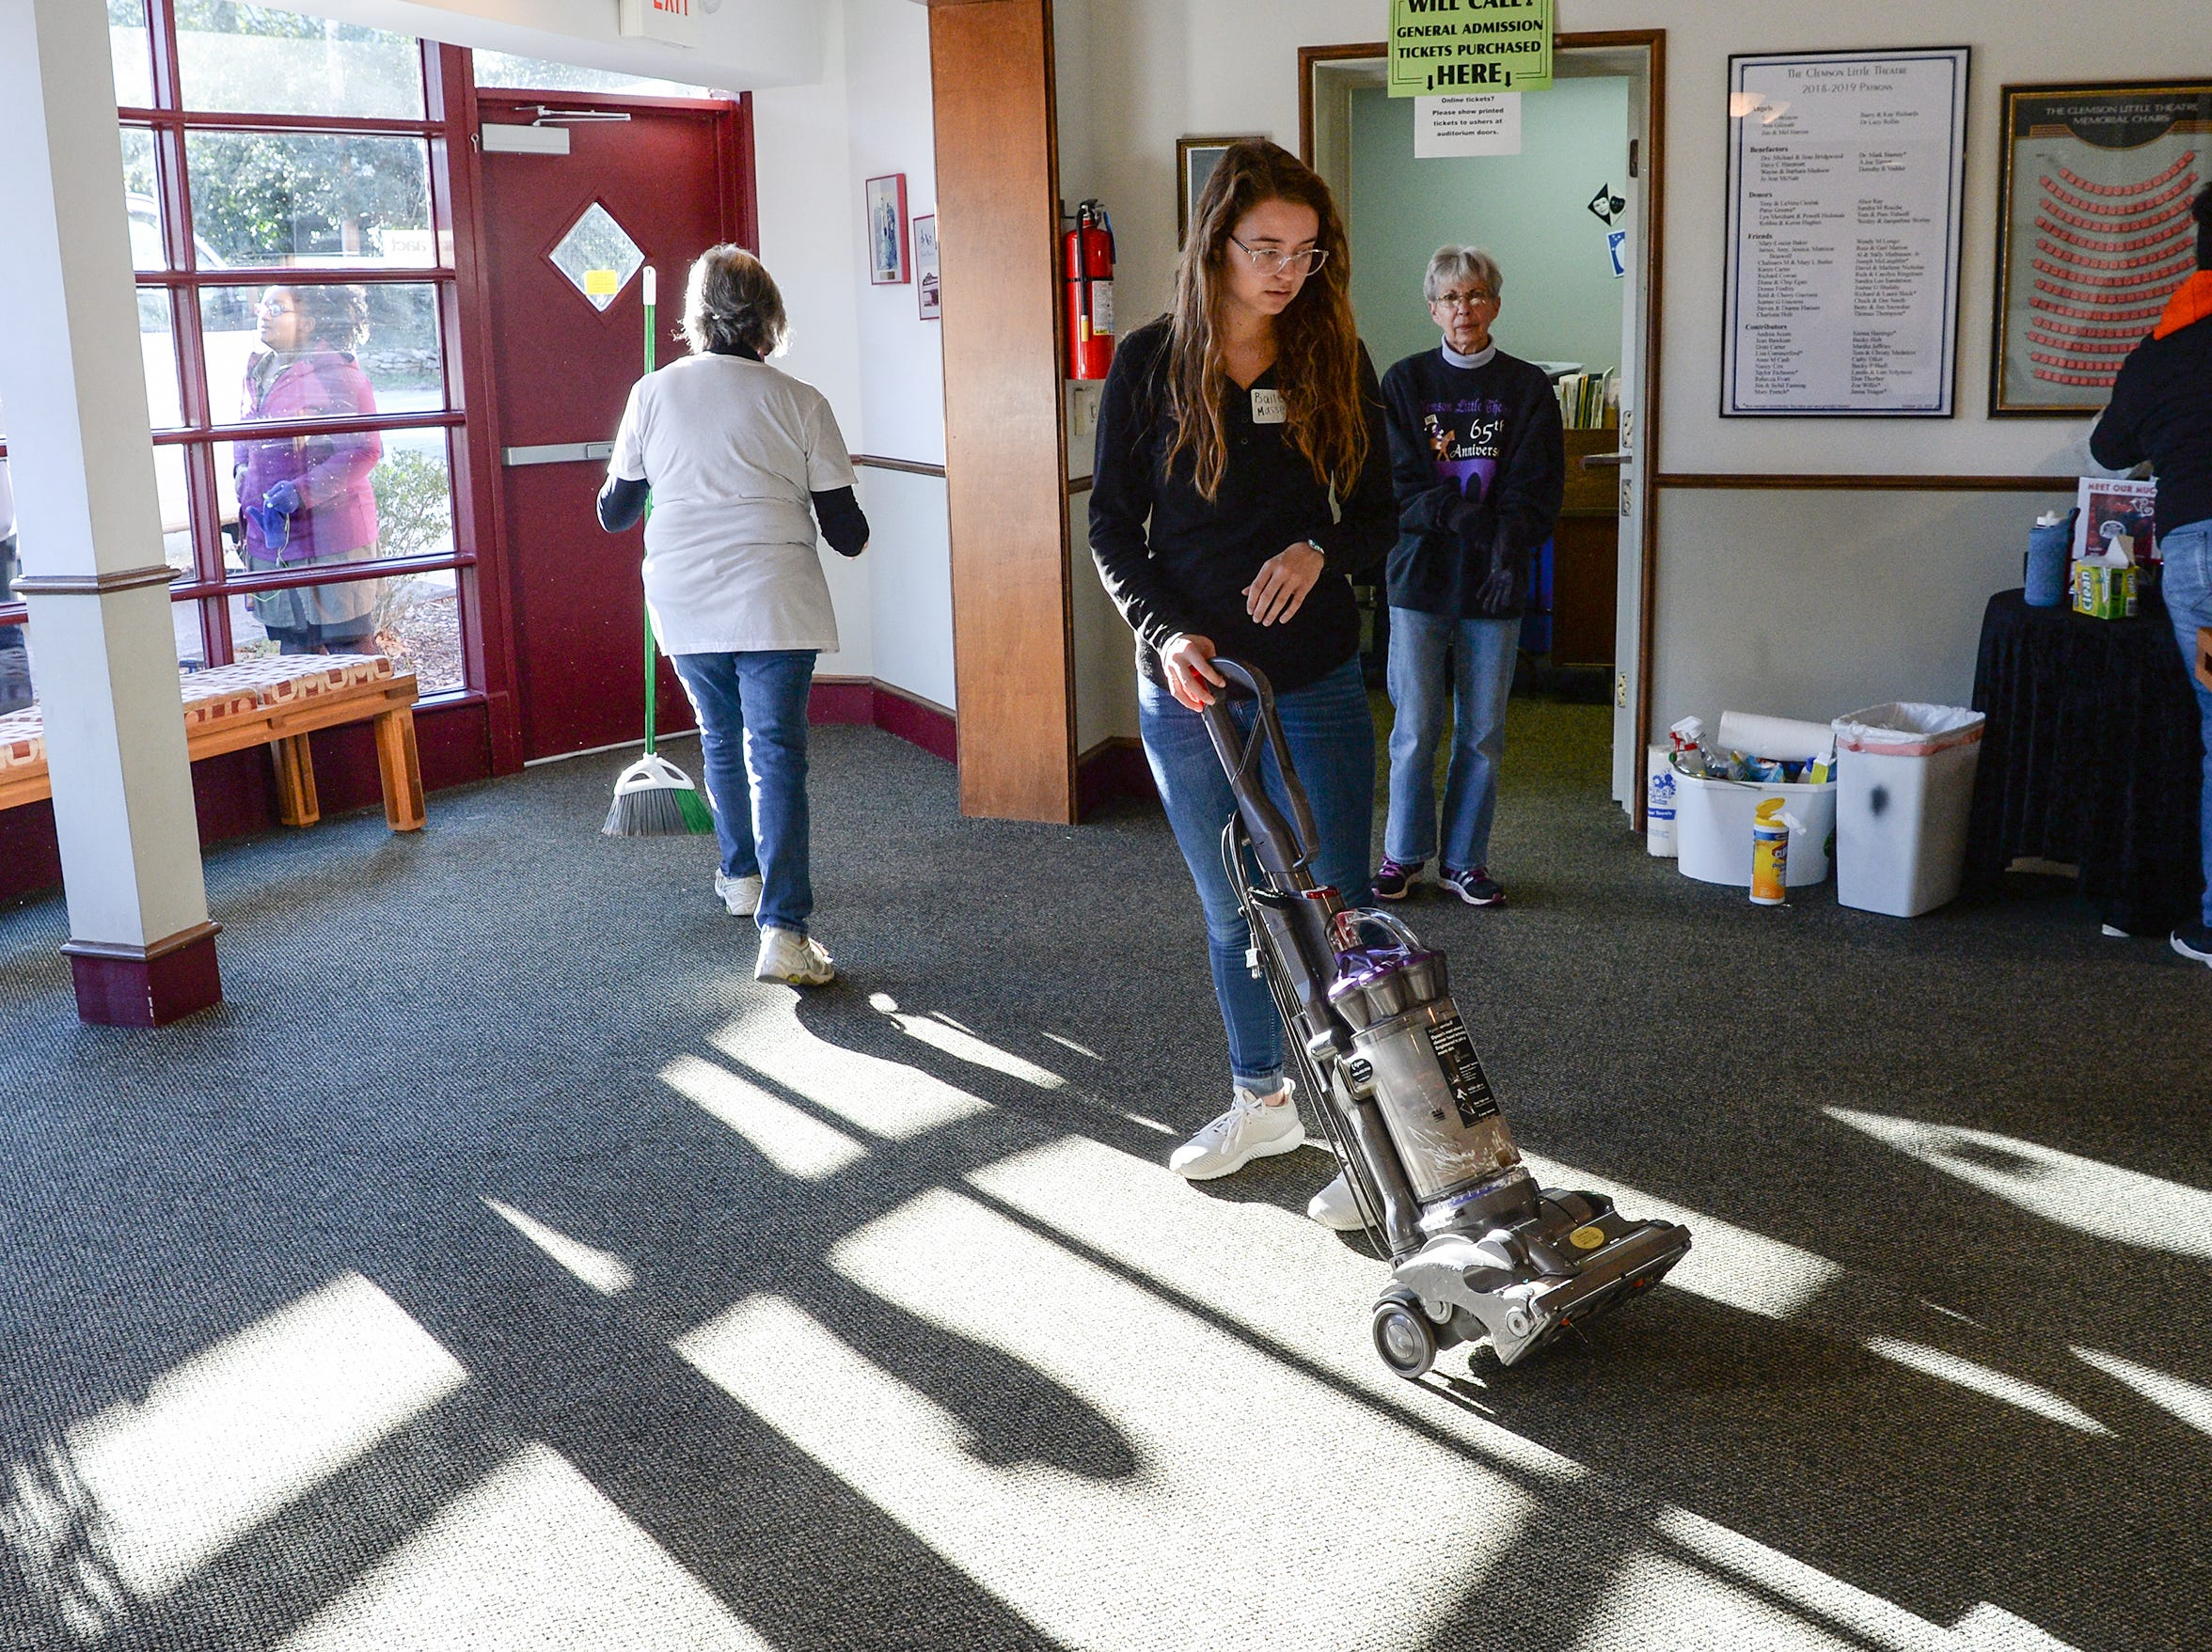 Bailey Massey, with Clemson University Gospel Choir members, helps clean the lobby at Clemson Little Theatre during the Clemson University Martin Luther King, Jr. Service Day in Clemson January 21, 2019.